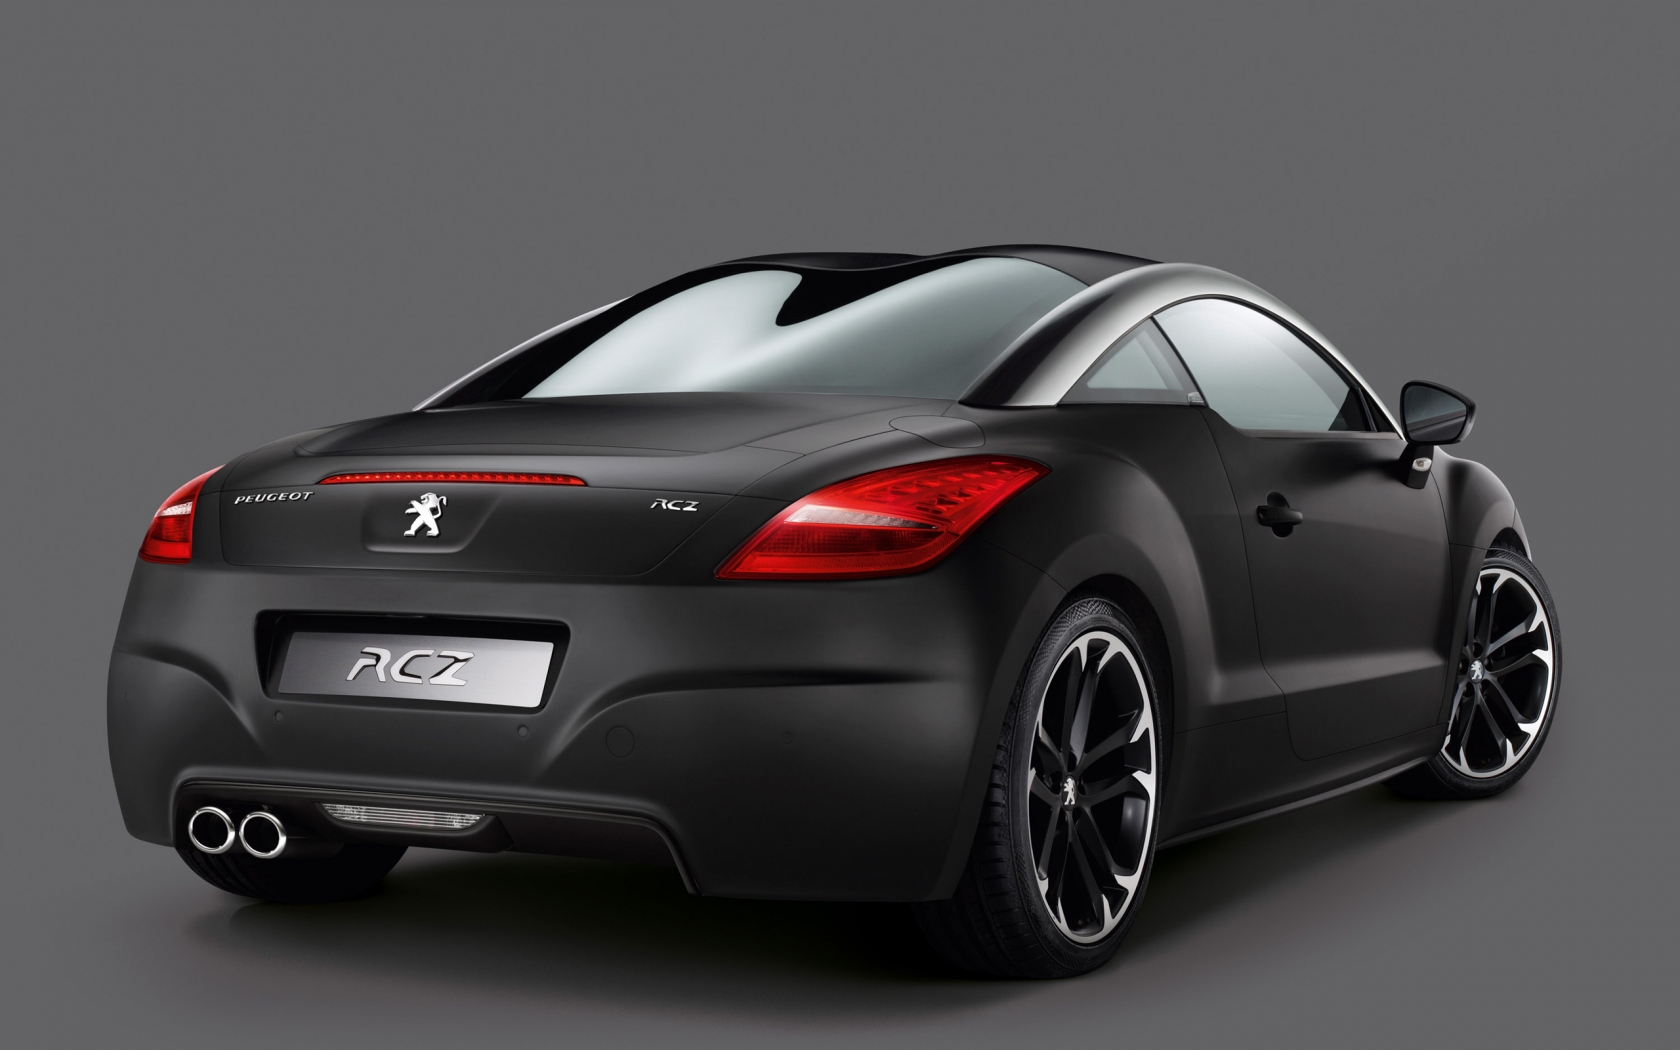 Peugeot RCZ Asphalt Rear for 1680 x 1050 widescreen resolution